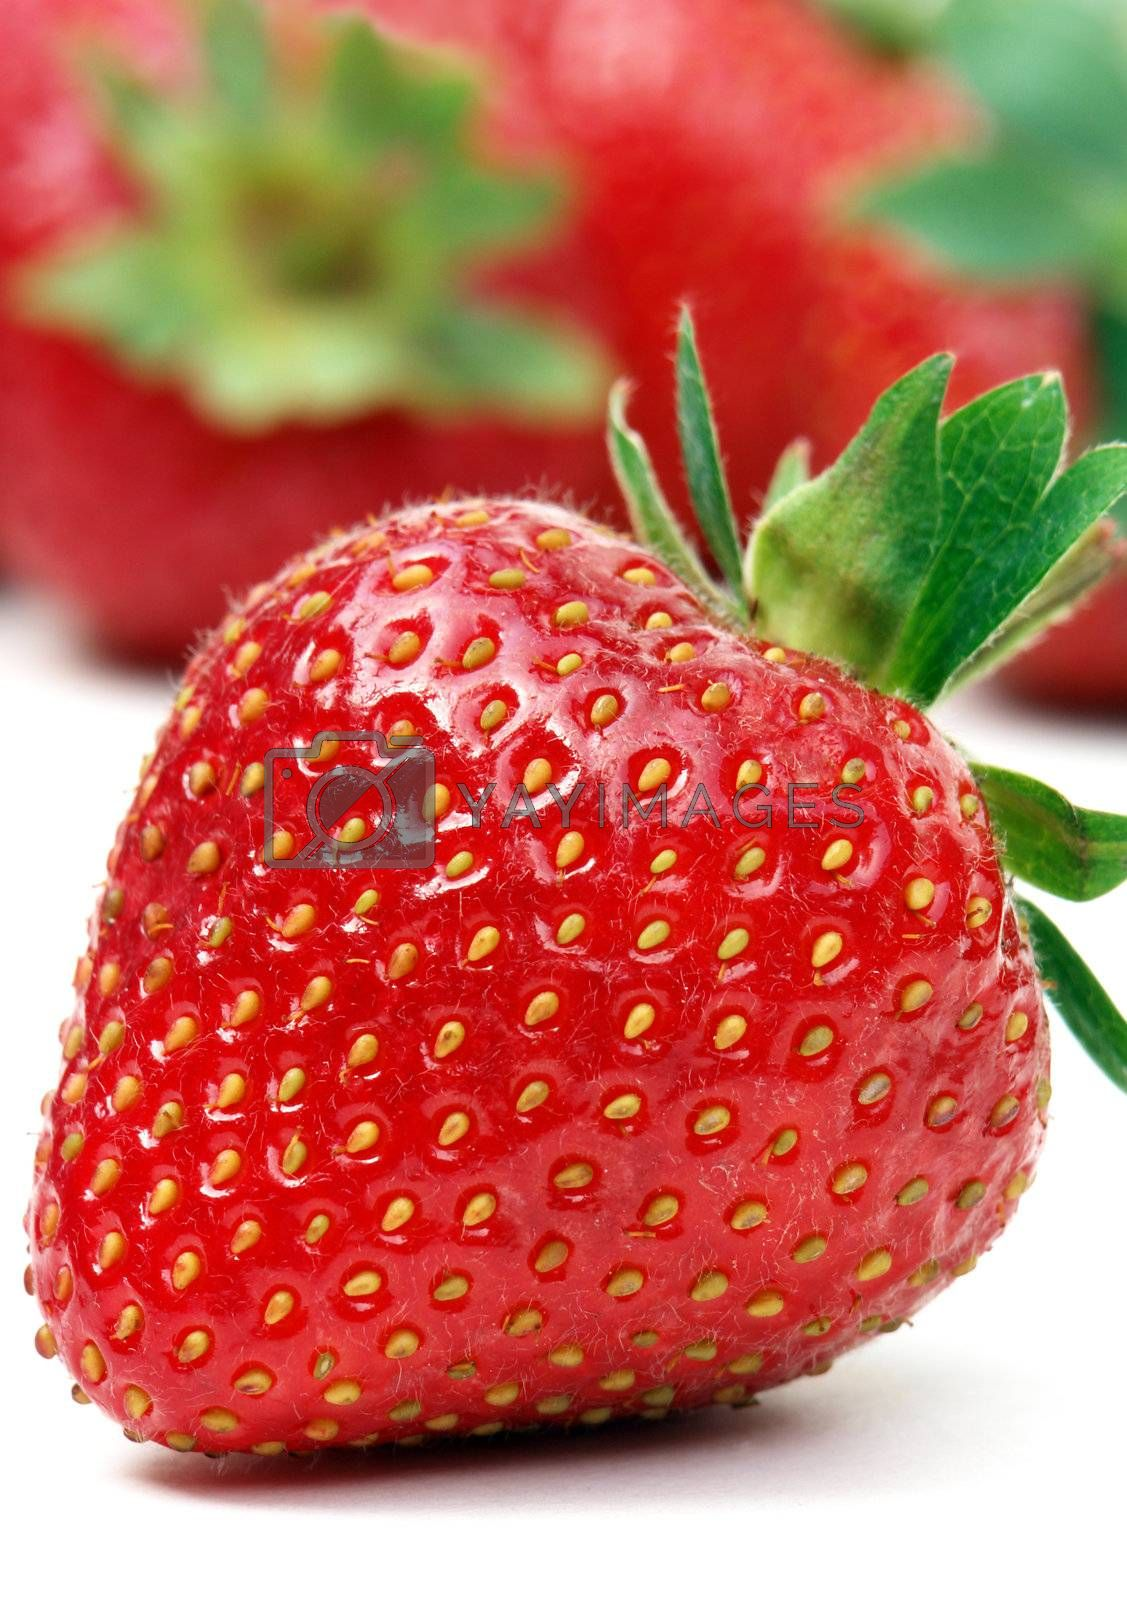 Stawberry on white with out of focus strawberries in background